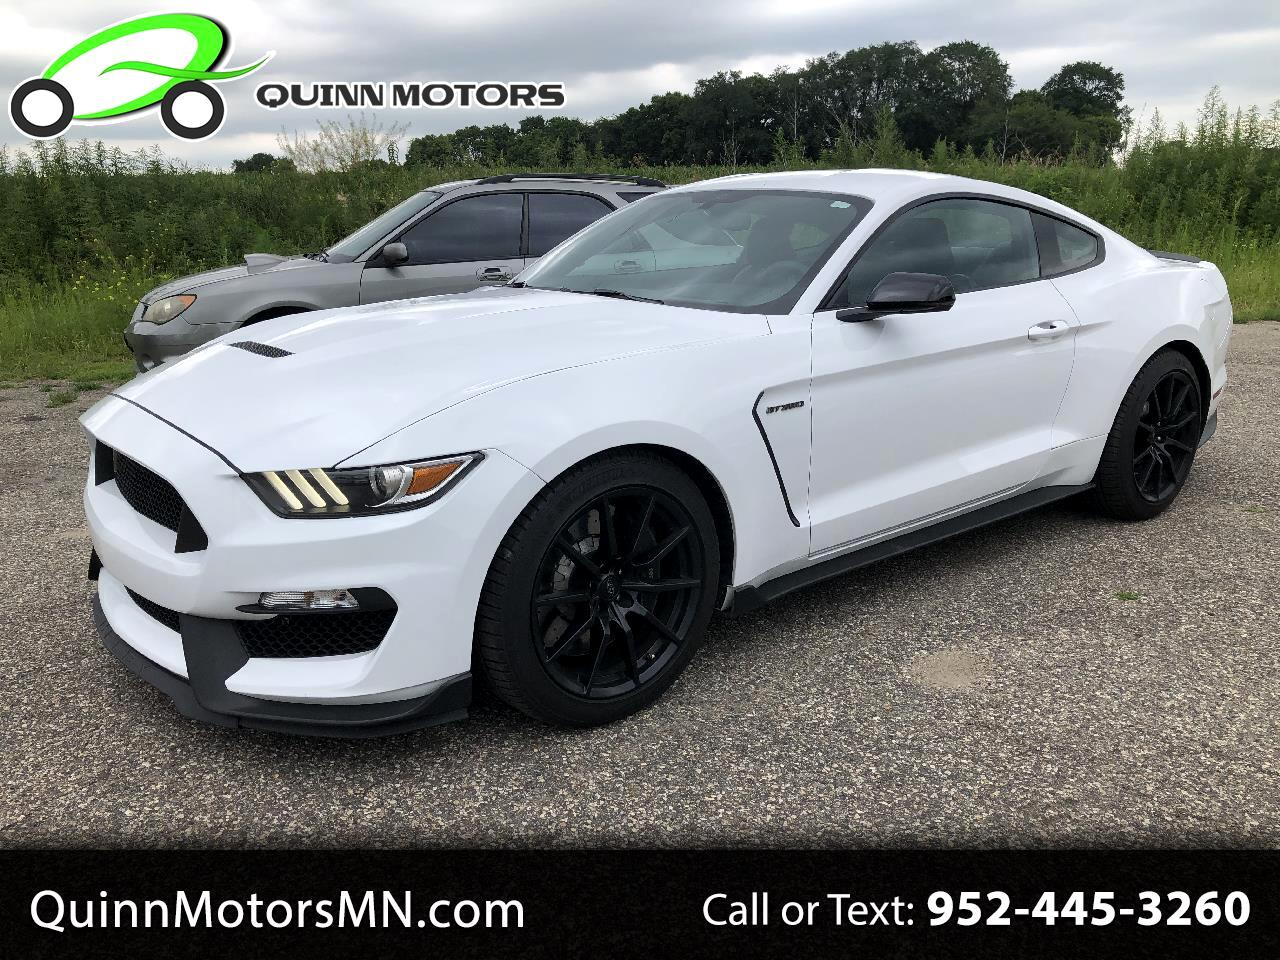 Used Cars For Sale In Mn >> Used Cars For Sale Shakopee Mn 55379 Quinn Motors